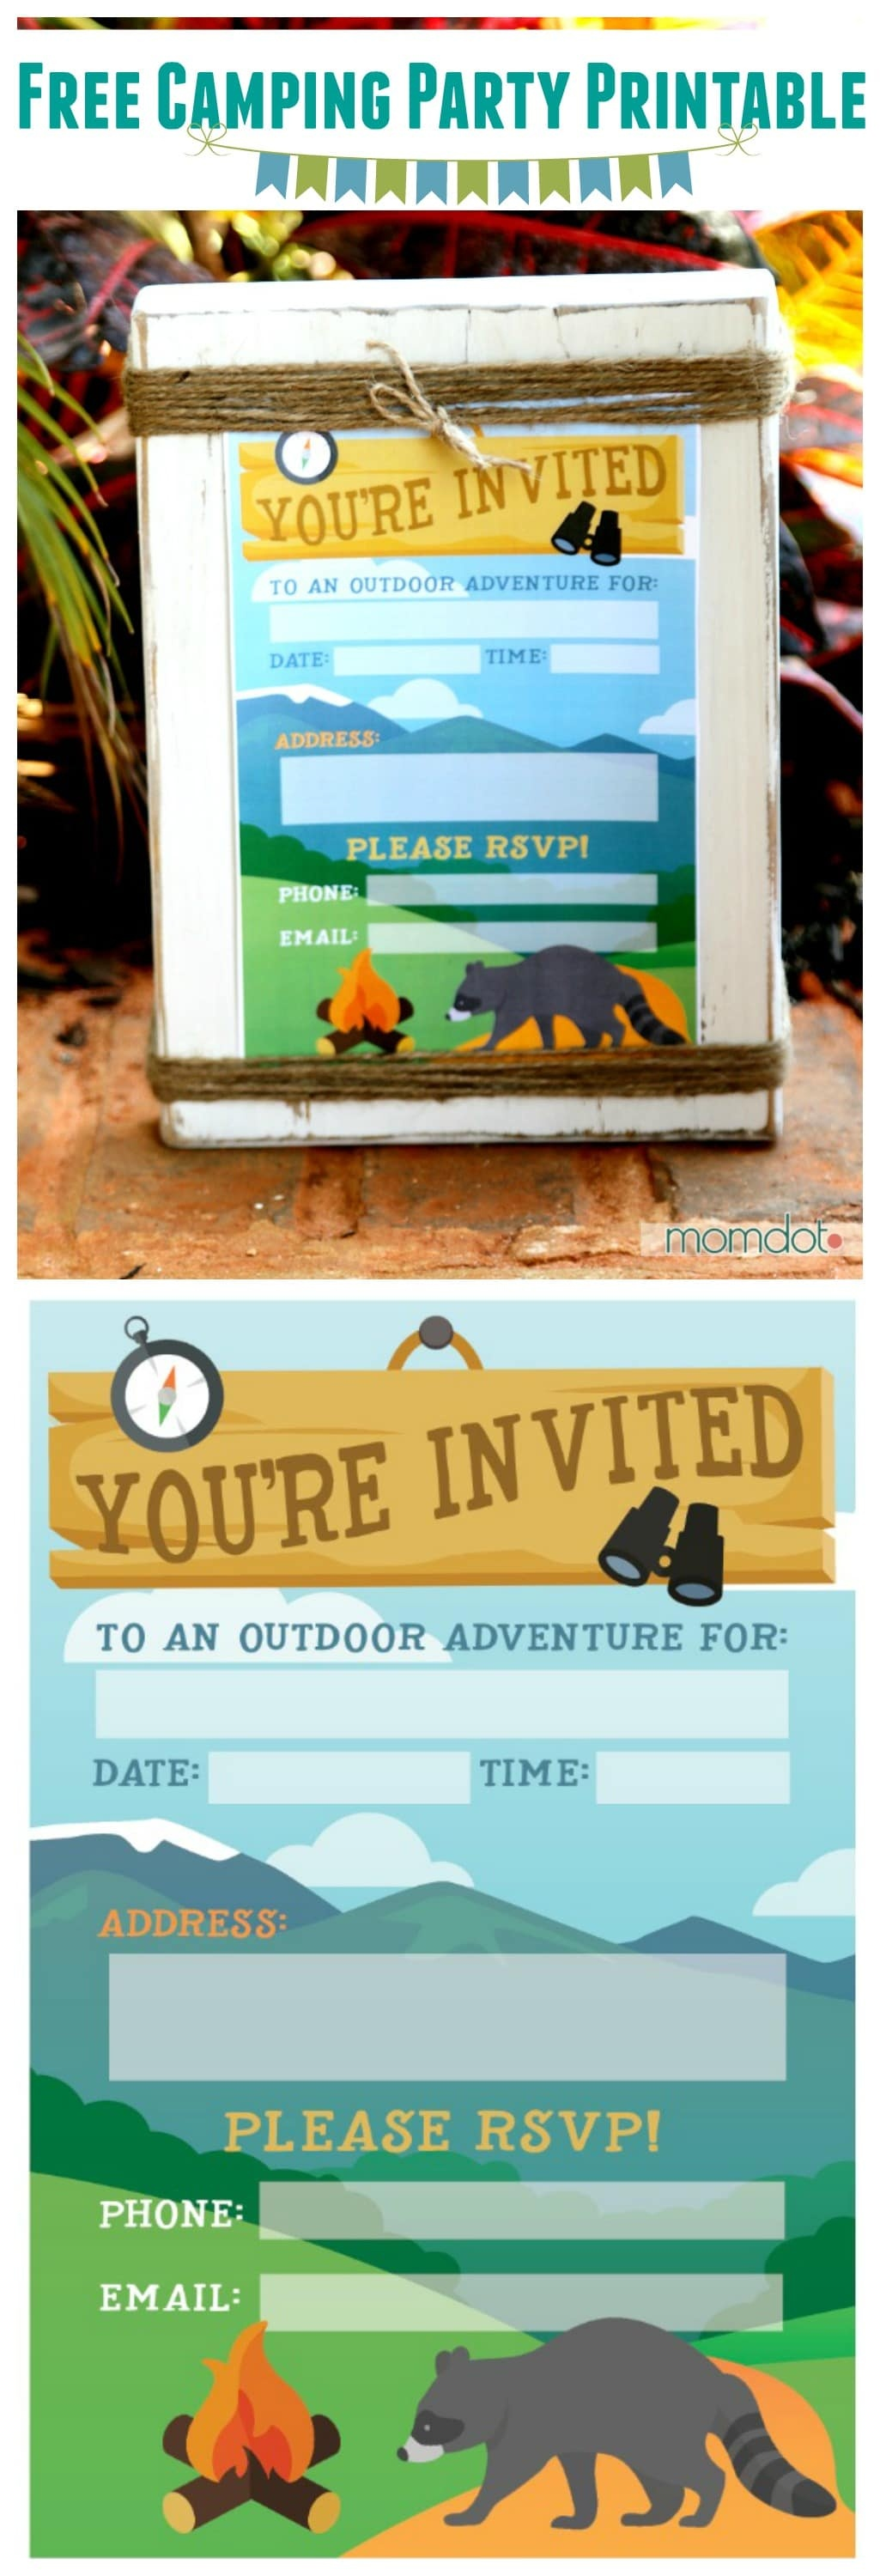 Camping Birthday Party Invite: Free Printable - - Free Printable Camping Themed Birthday Invitations